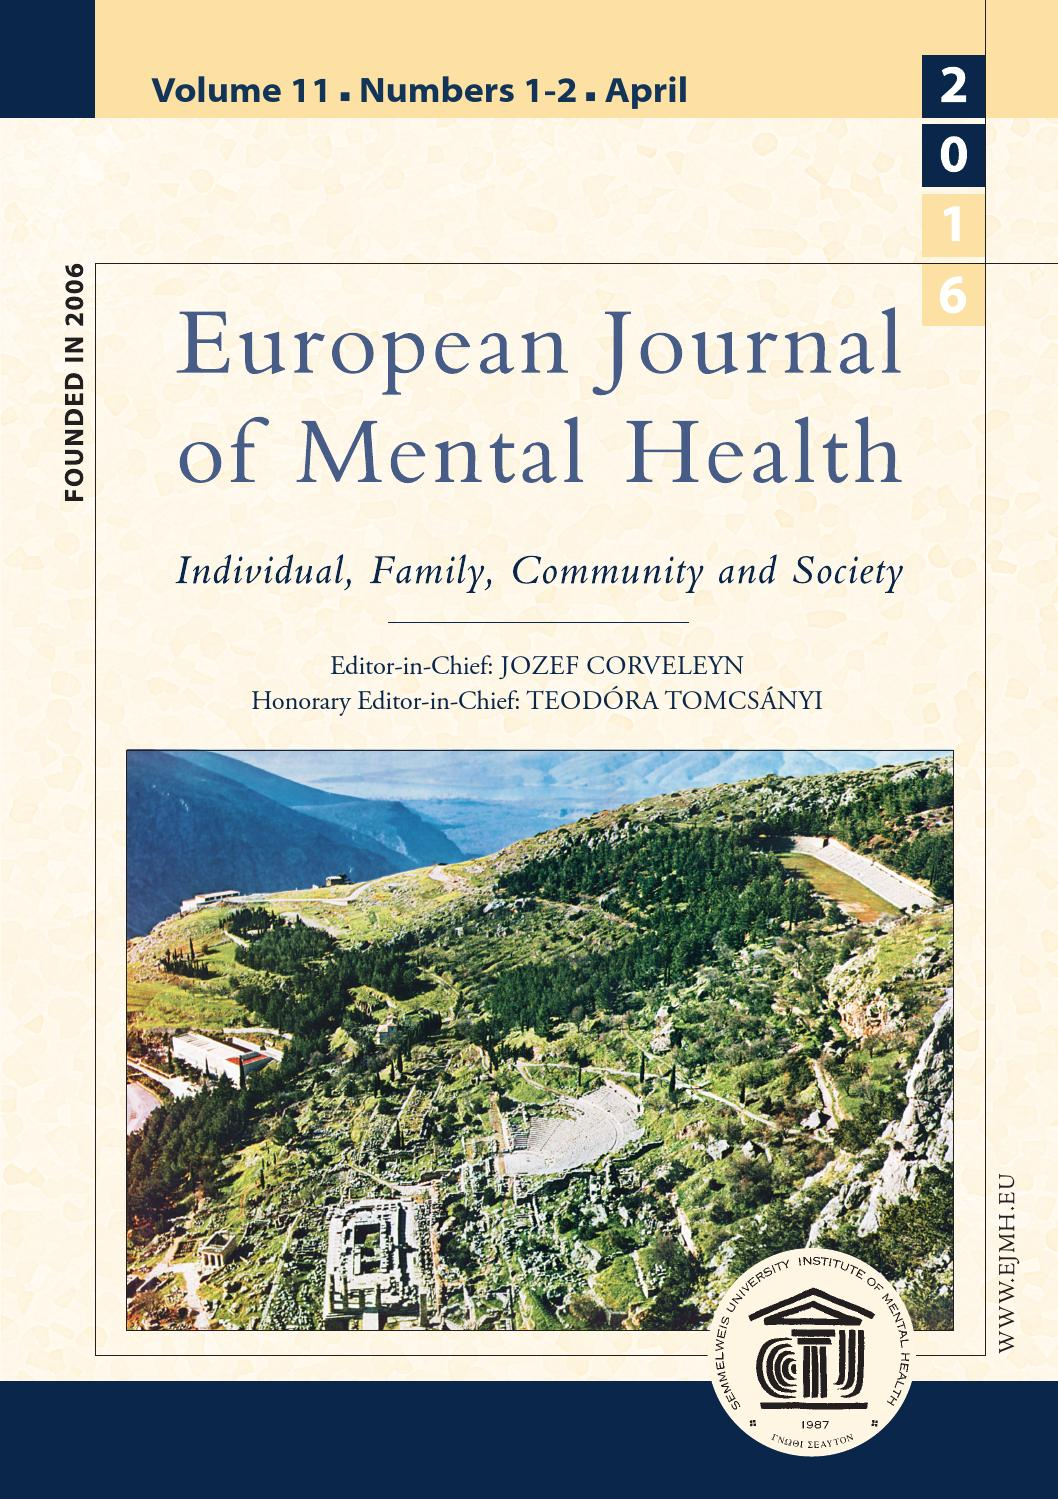 European Journal of Mental Health 11 2016/12 by European Journal of ...